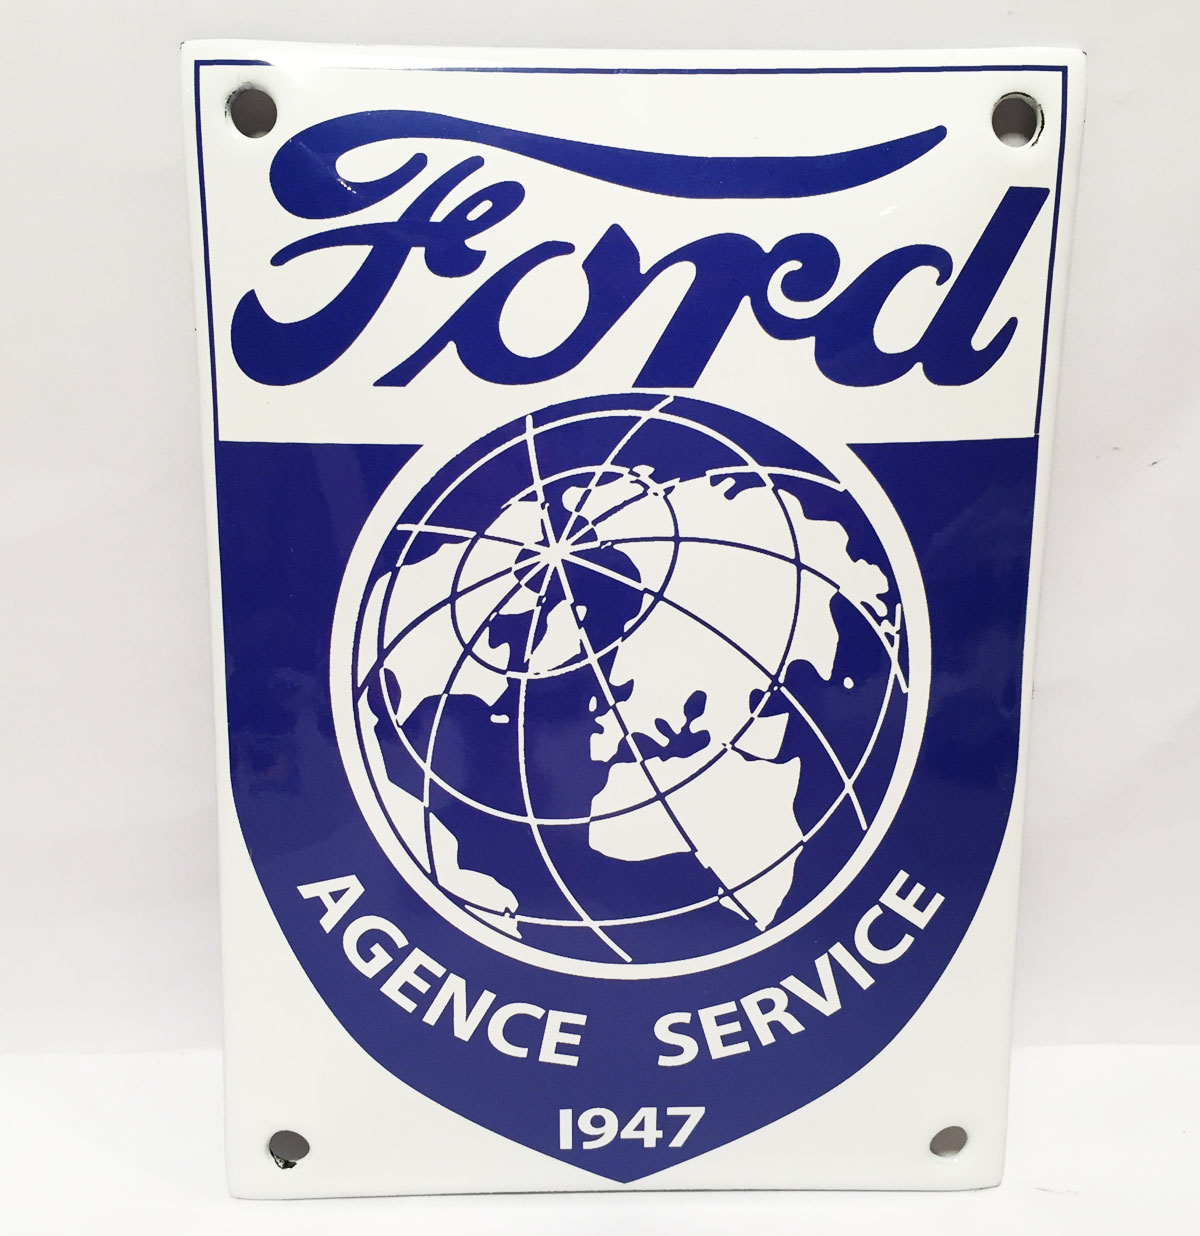 Ford Agence Service 1947 Emaille Bord